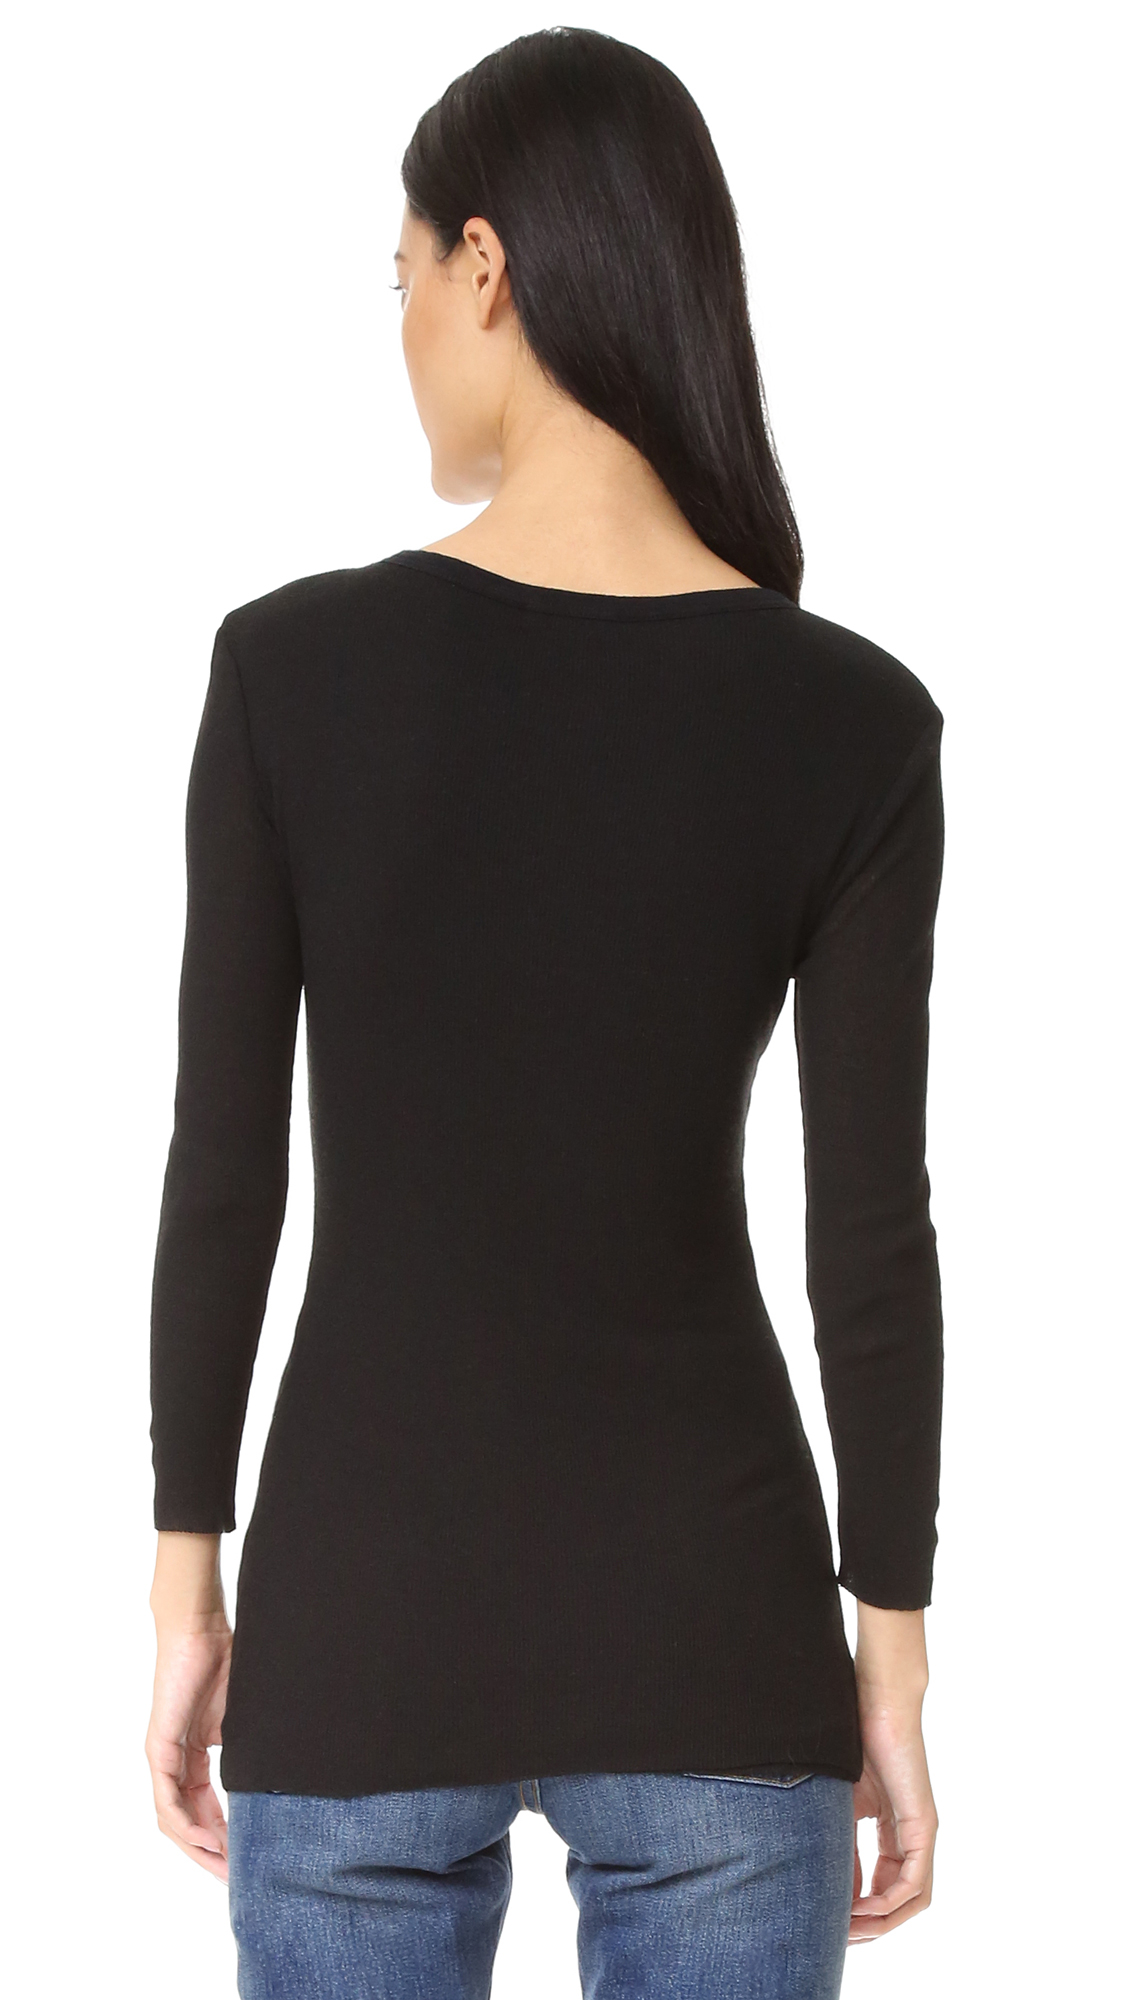 Lyst james perse rib henley top in black for James perse henley shirt